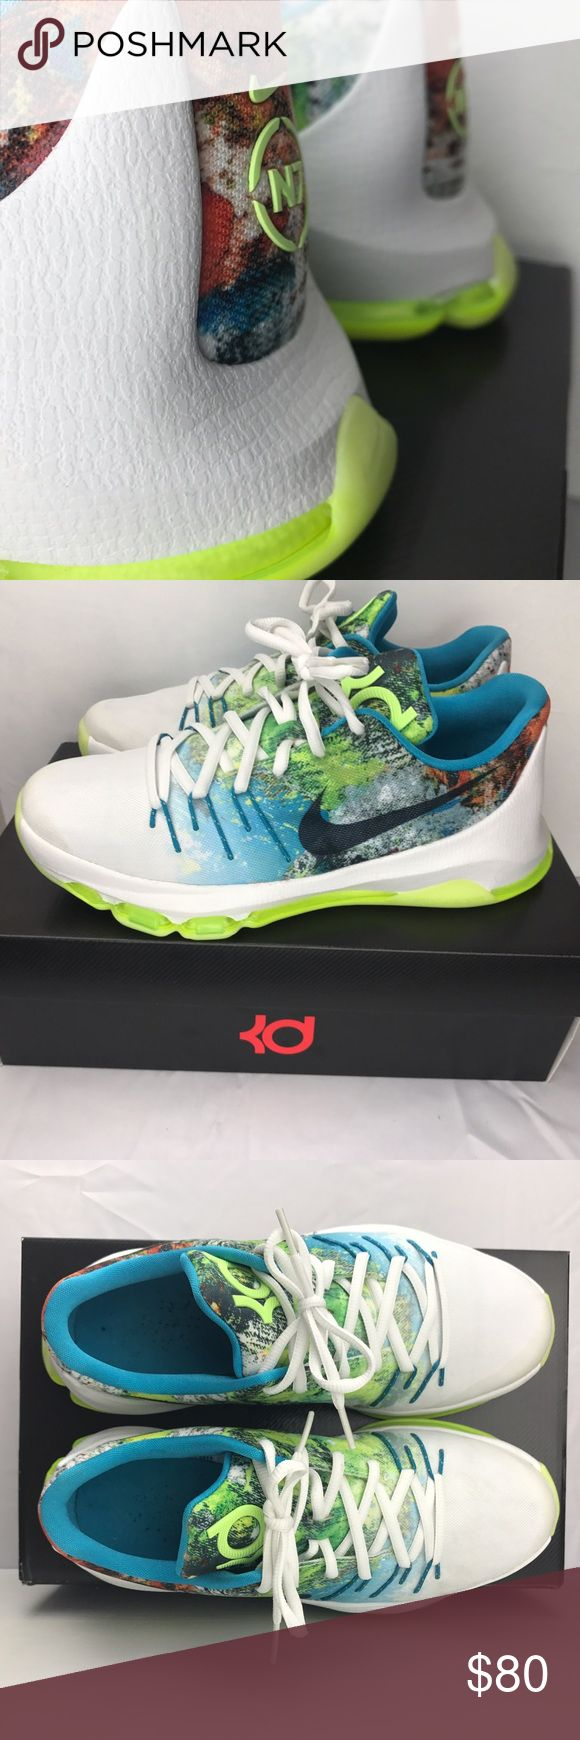 KD 8 Big Kids Basketball Shoes (size 7Y) Kevin Durant basketball shoes. Great condition. Worn playing basketball once. So they are not even broken-in. Selling as is. Black socks were worn when playing in these shoes so you will see the cotton balls from those socks in them. However they are in great condition and I depict in the picture their condition best as possible. The bottoms of the shoes do glow in the dark. See Nike shoe size chart to see shoe size requirements. Nike Shoes Sneakers